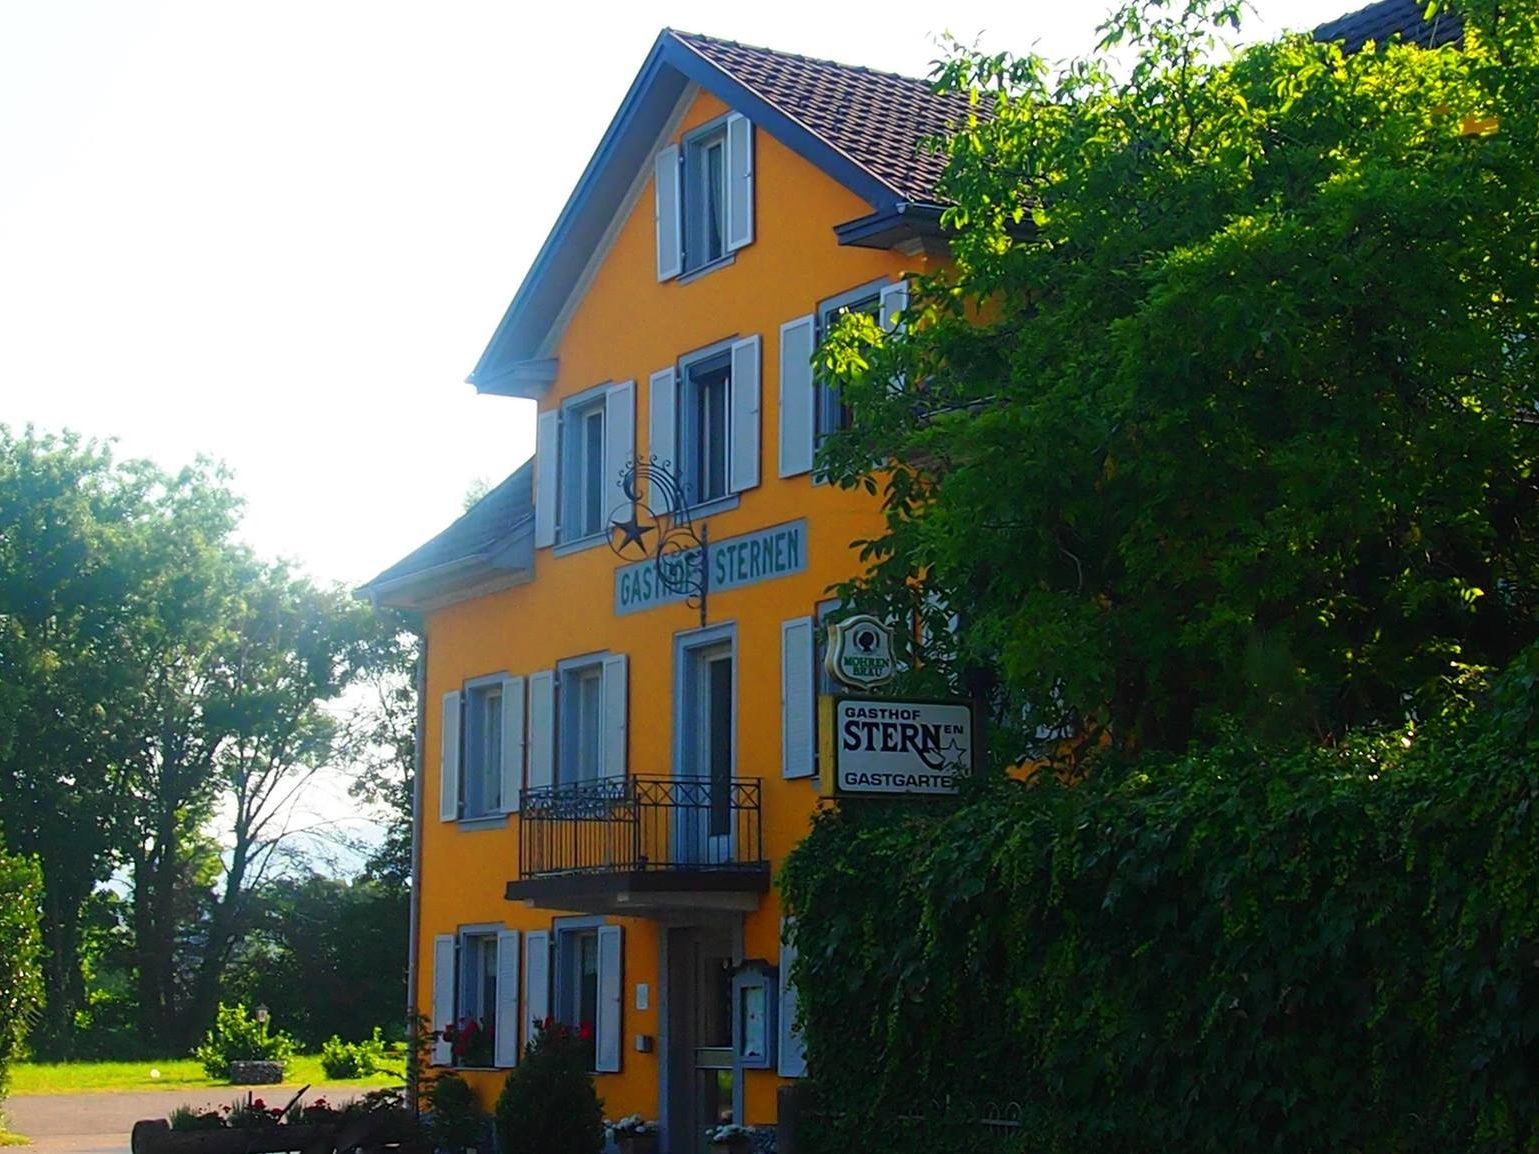 Traditions-Gasthaus Sternen in Hard.